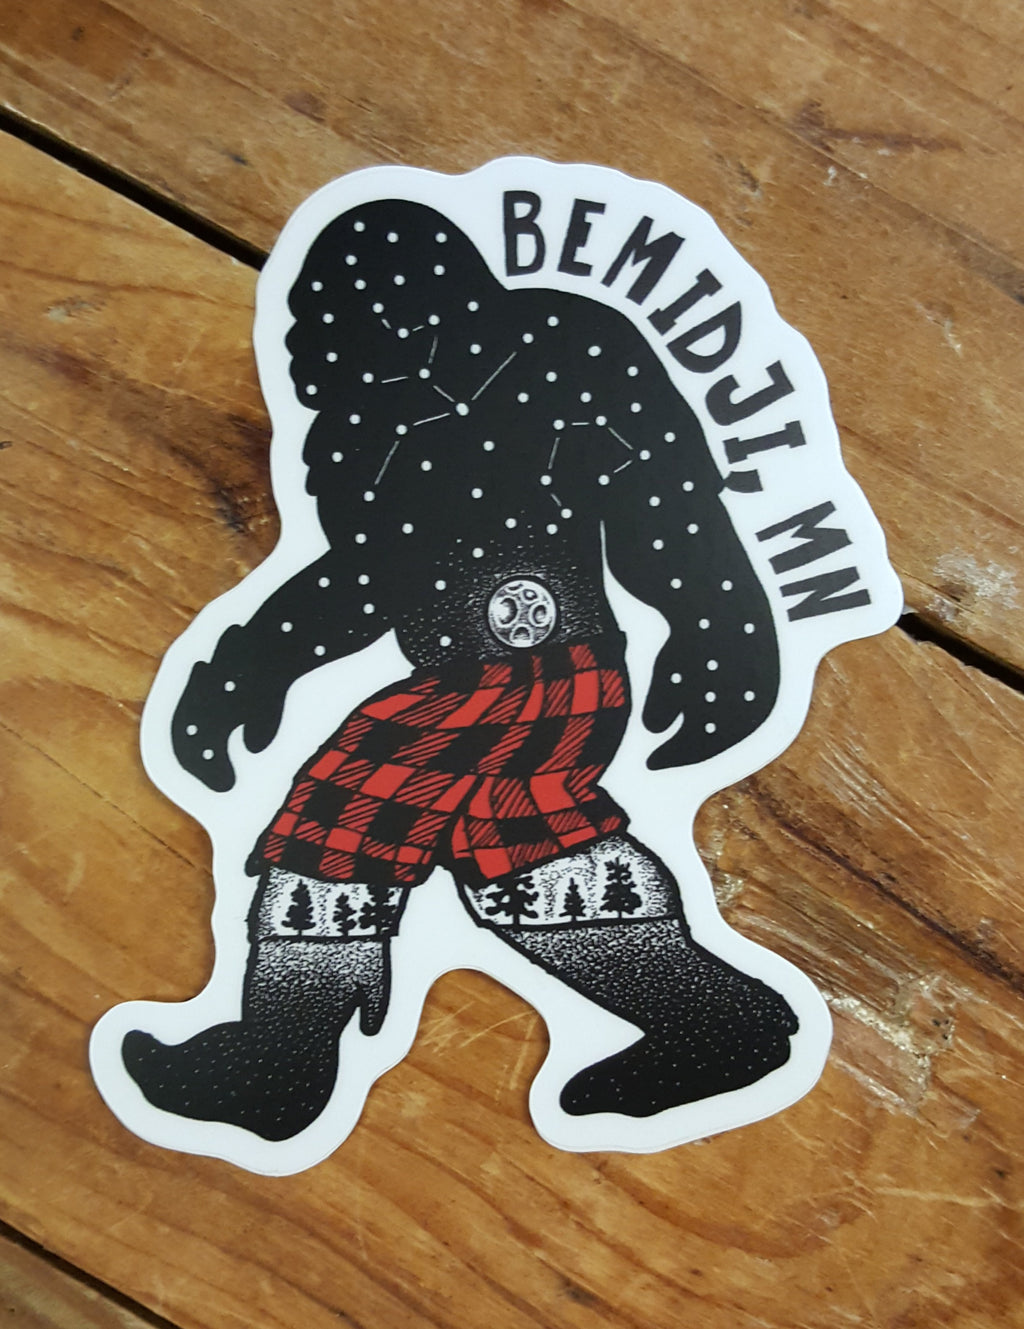 Bemidji Sasquatch - Decal